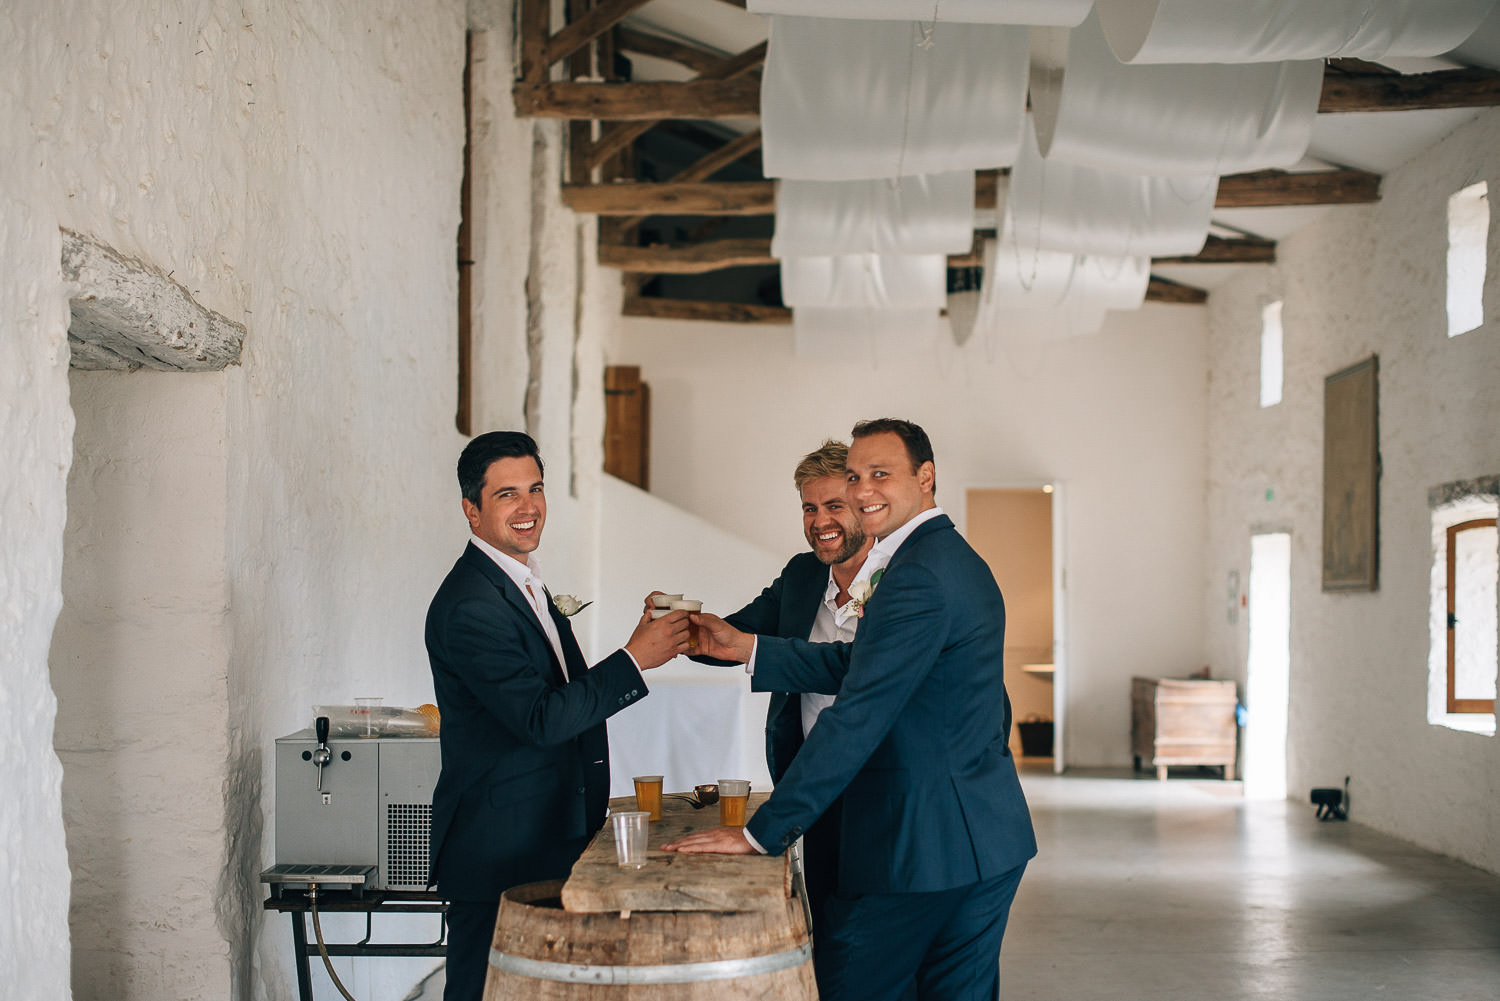 Groomsmen at the bar in Chateau de la Bourlie Wedding by creative and alternative destination wedding photographer the shannons photography